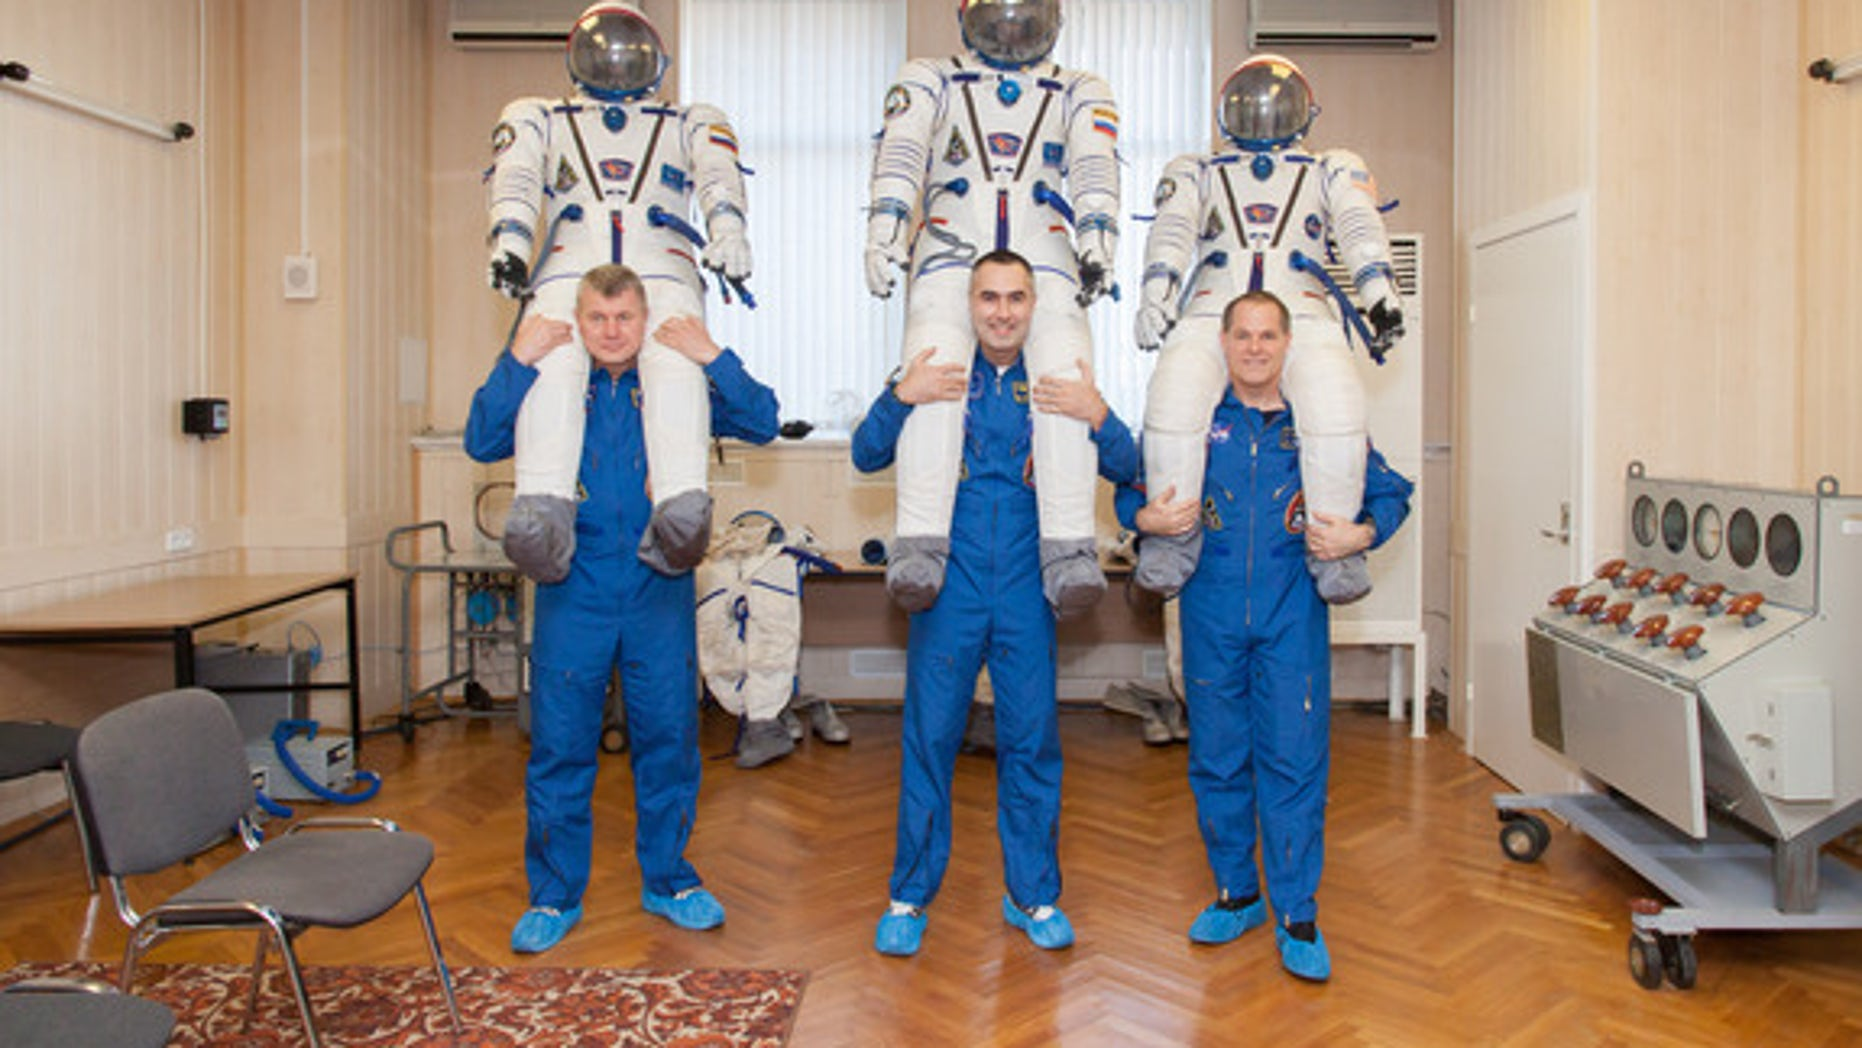 "At the Baikonur Cosmodrome in Kazakhstan, the Expedition 33 crew share a playful moment Oct. 10, 2012 during the first of two so-called ""fit check"" dress rehearsal sessions. From left to right are Soyuz Commander Oleg Novitskiy, Flight Engineer"